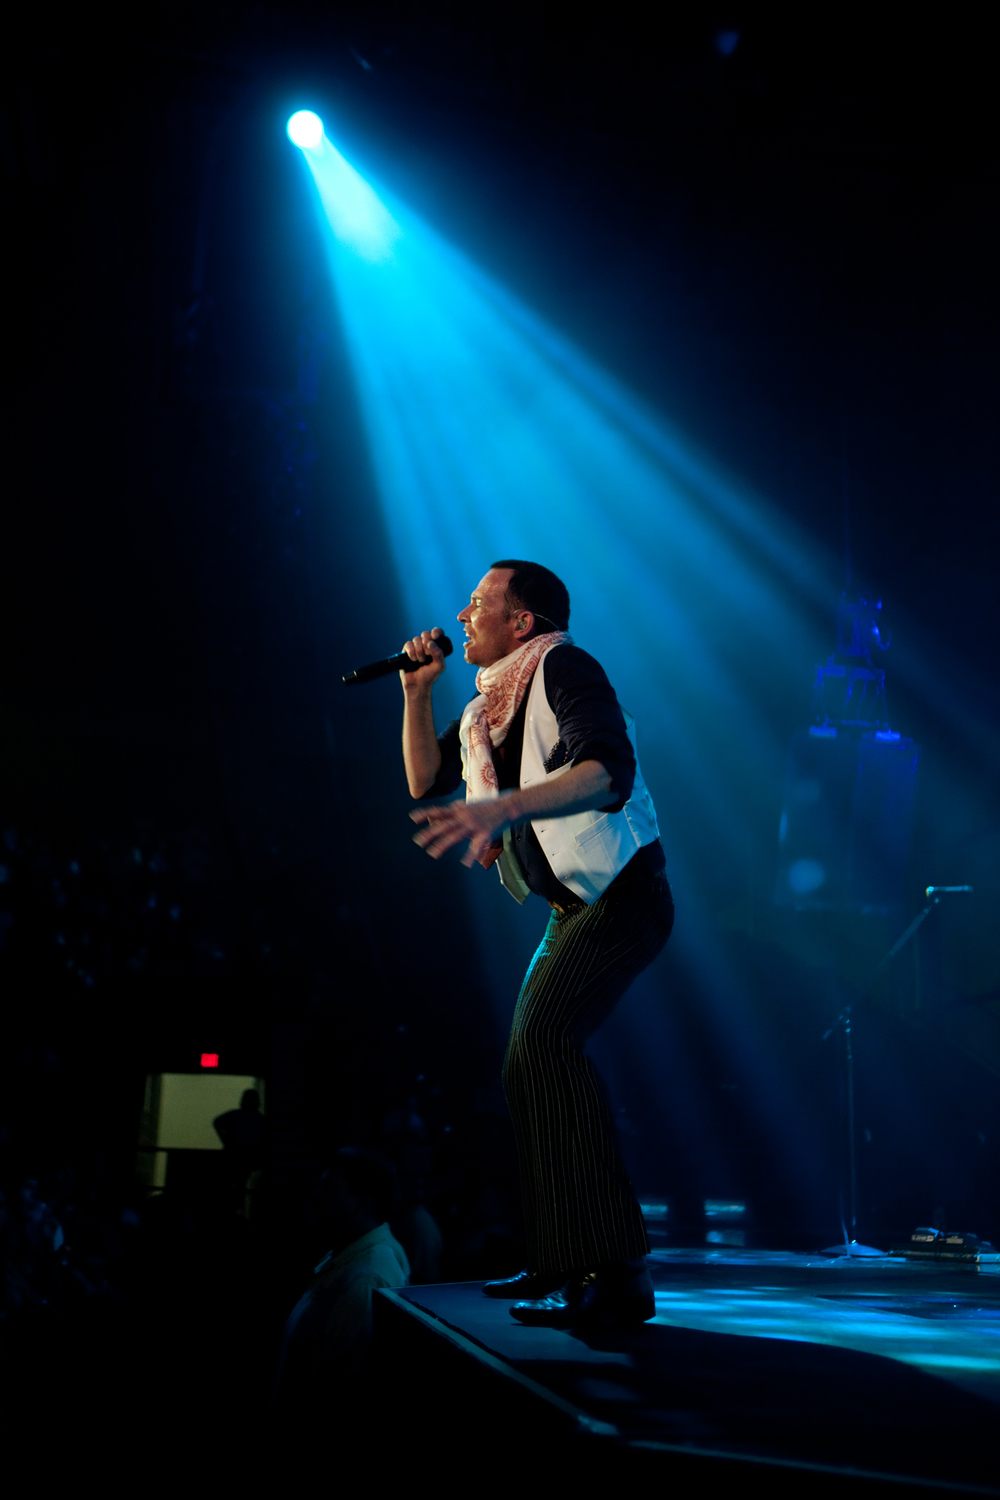 Scott Weiland singing live on stage